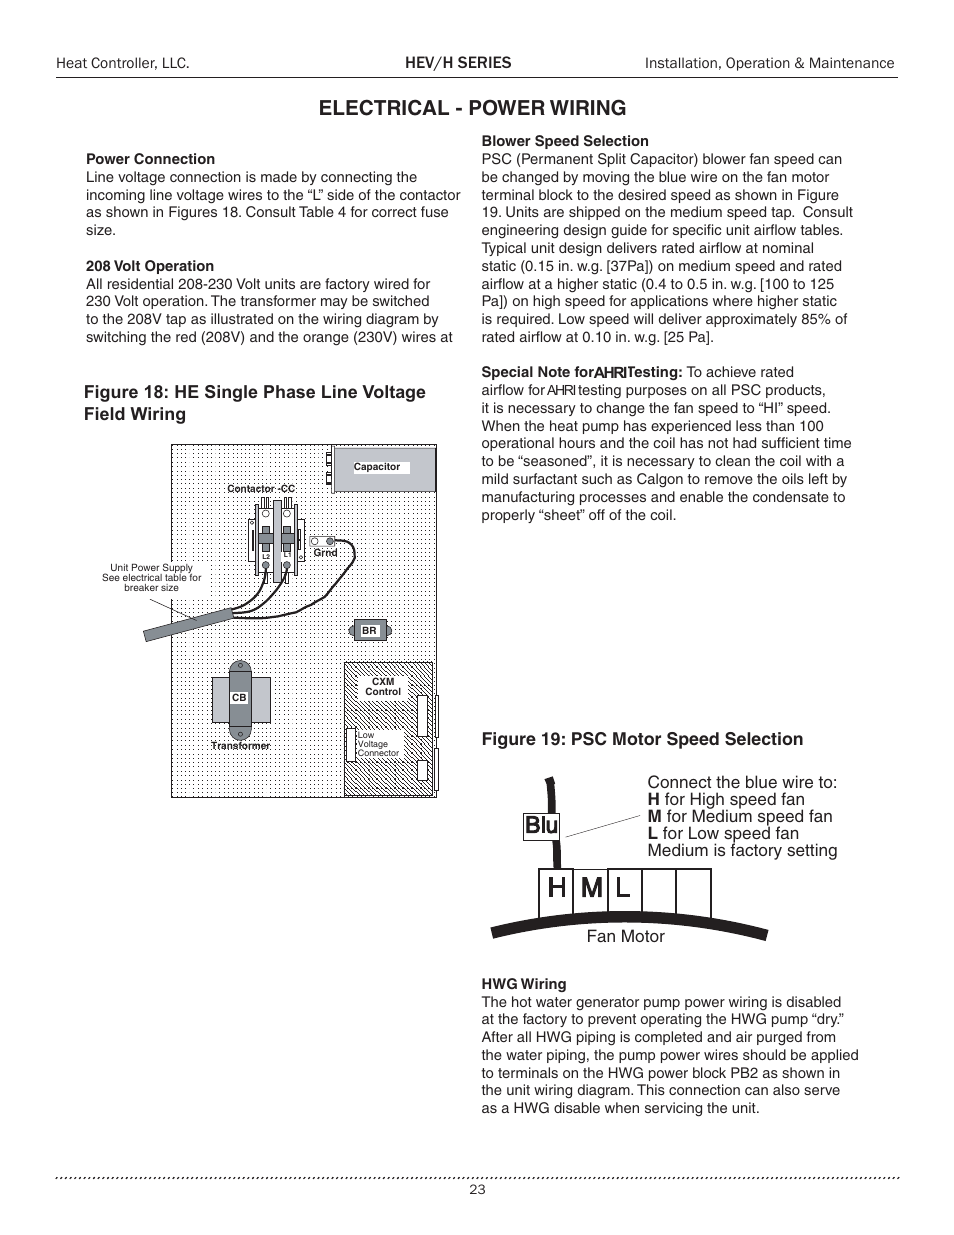 Electrical Power Wiring Hev H Series Comfort Aire Heh 2 Psc Motor Diagram Repalcement Parts And